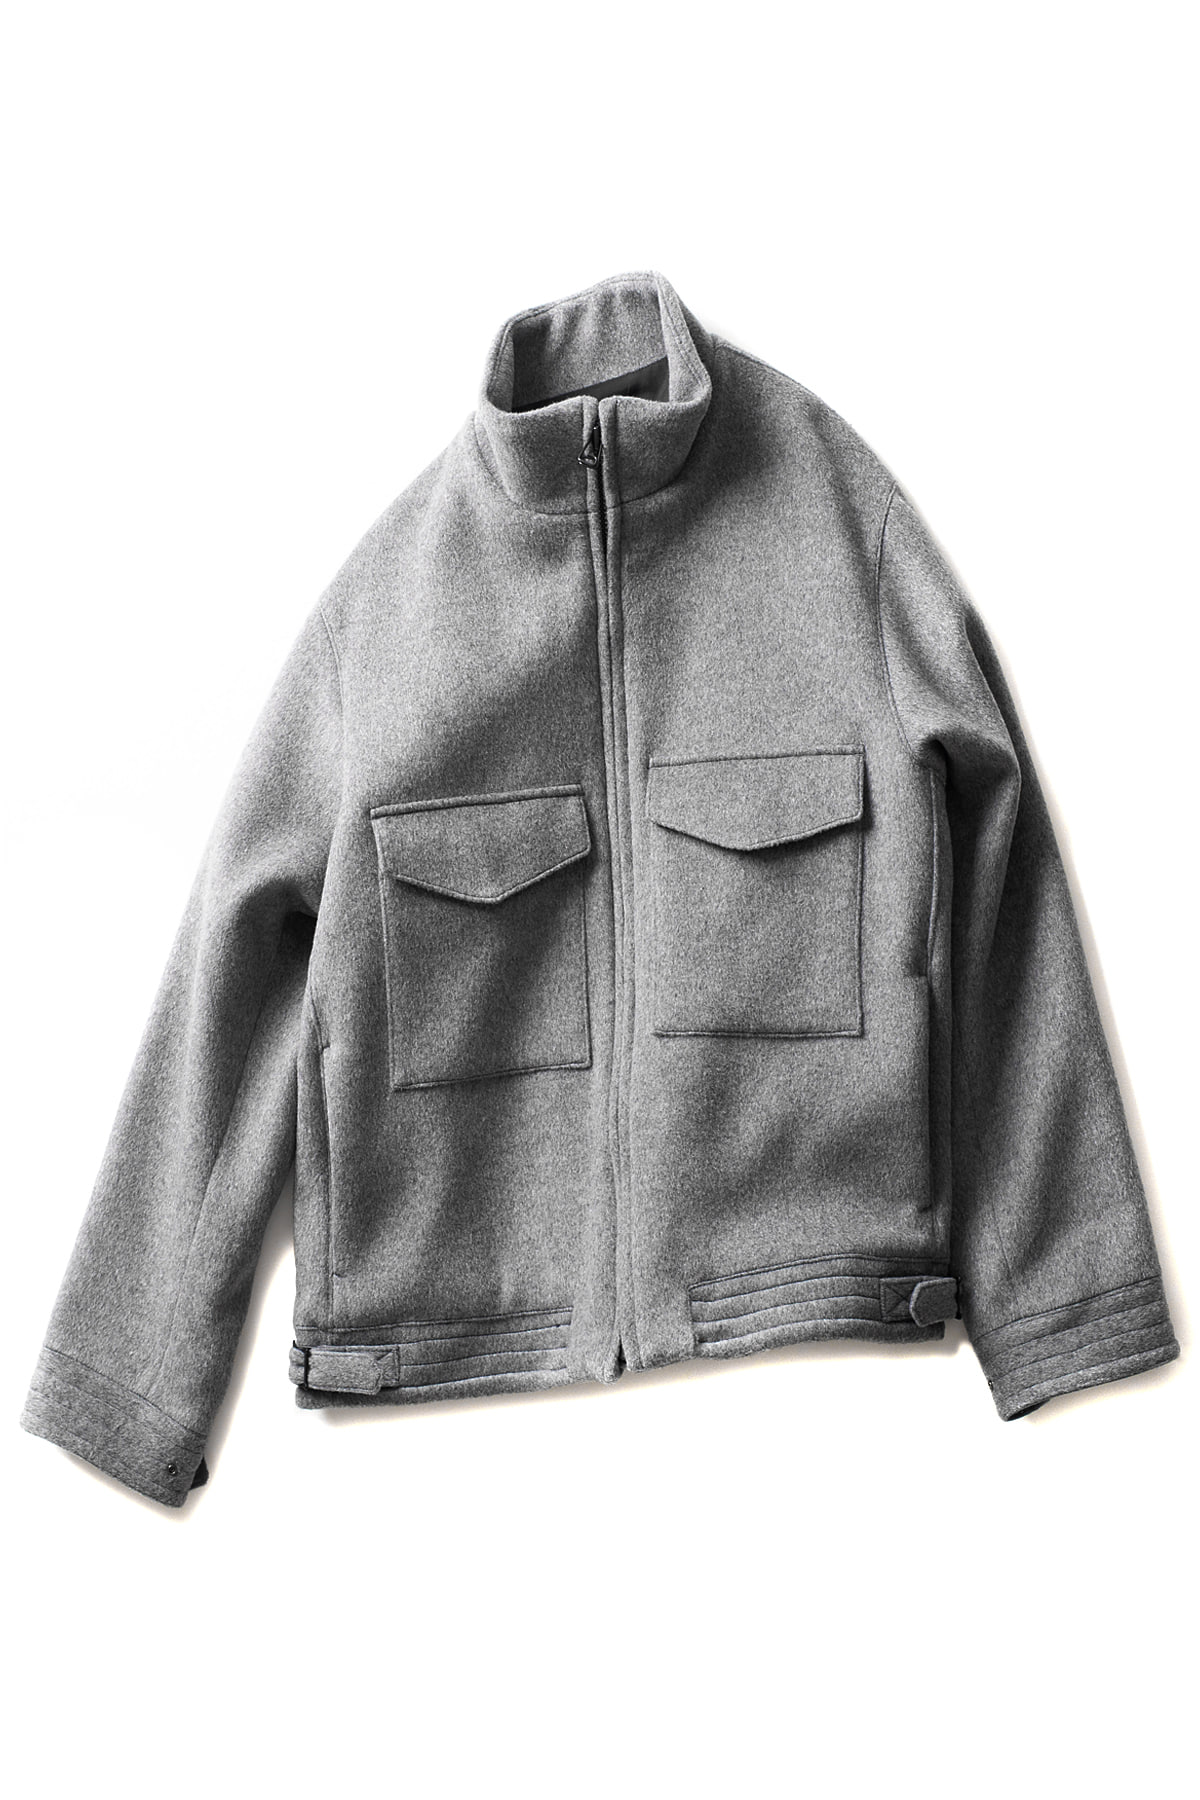 KURO : Super 100's Stand Collar Jacket (Grey)